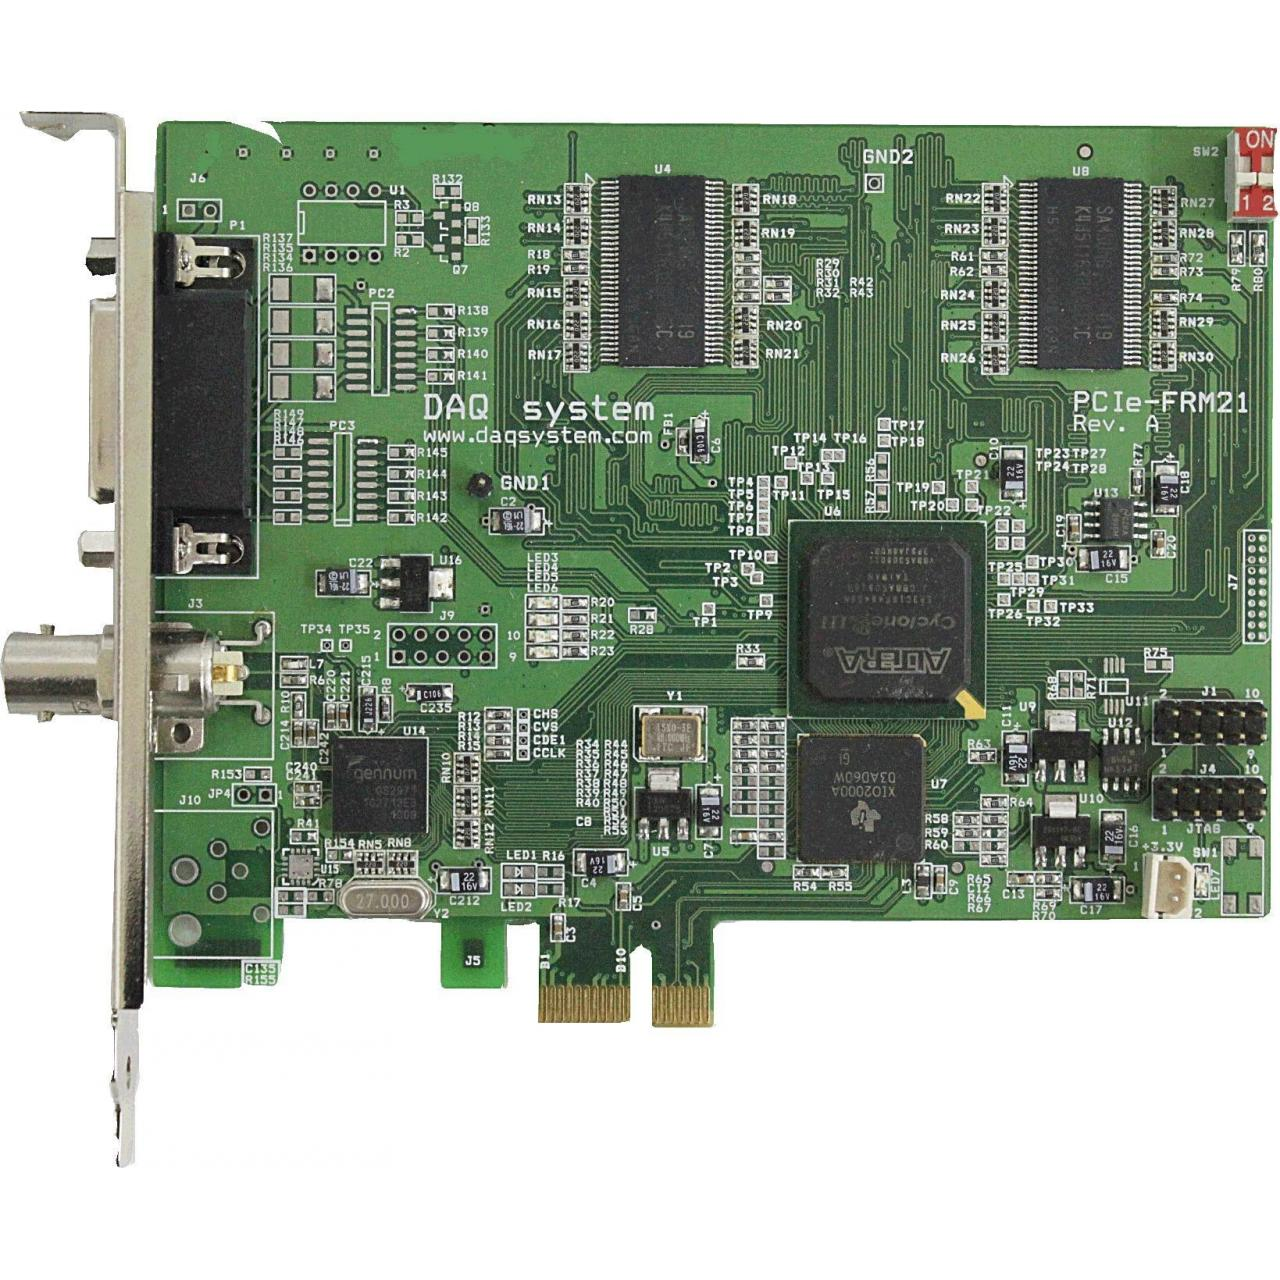 Buy cheap PCIe-FRM21 HD-SDI Frame Grabber from wholesalers